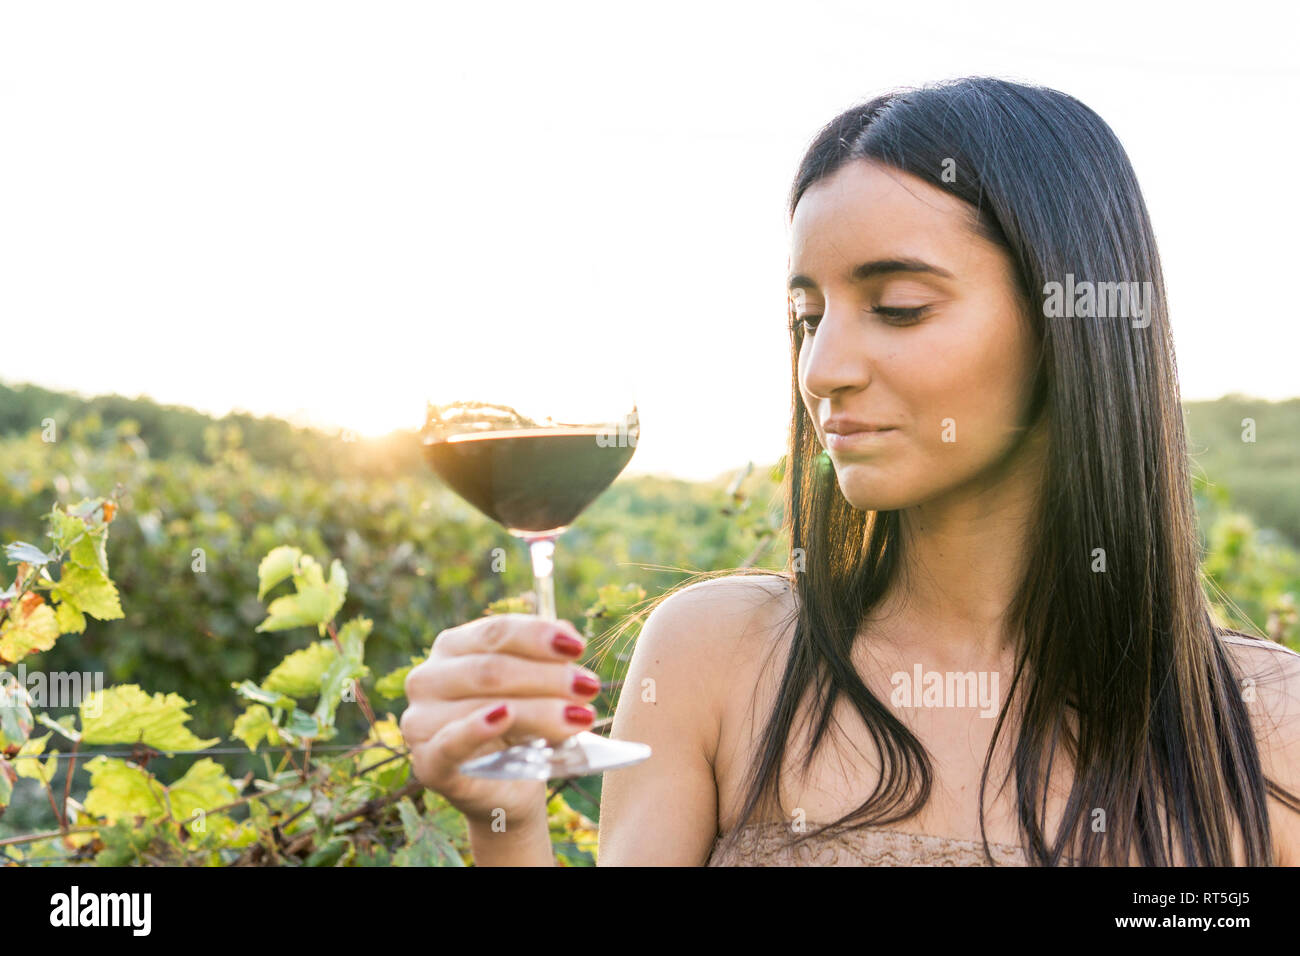 Italy, Tuscany, Siena, young woman tasting red wine in a vineyard at sunset Stock Photo